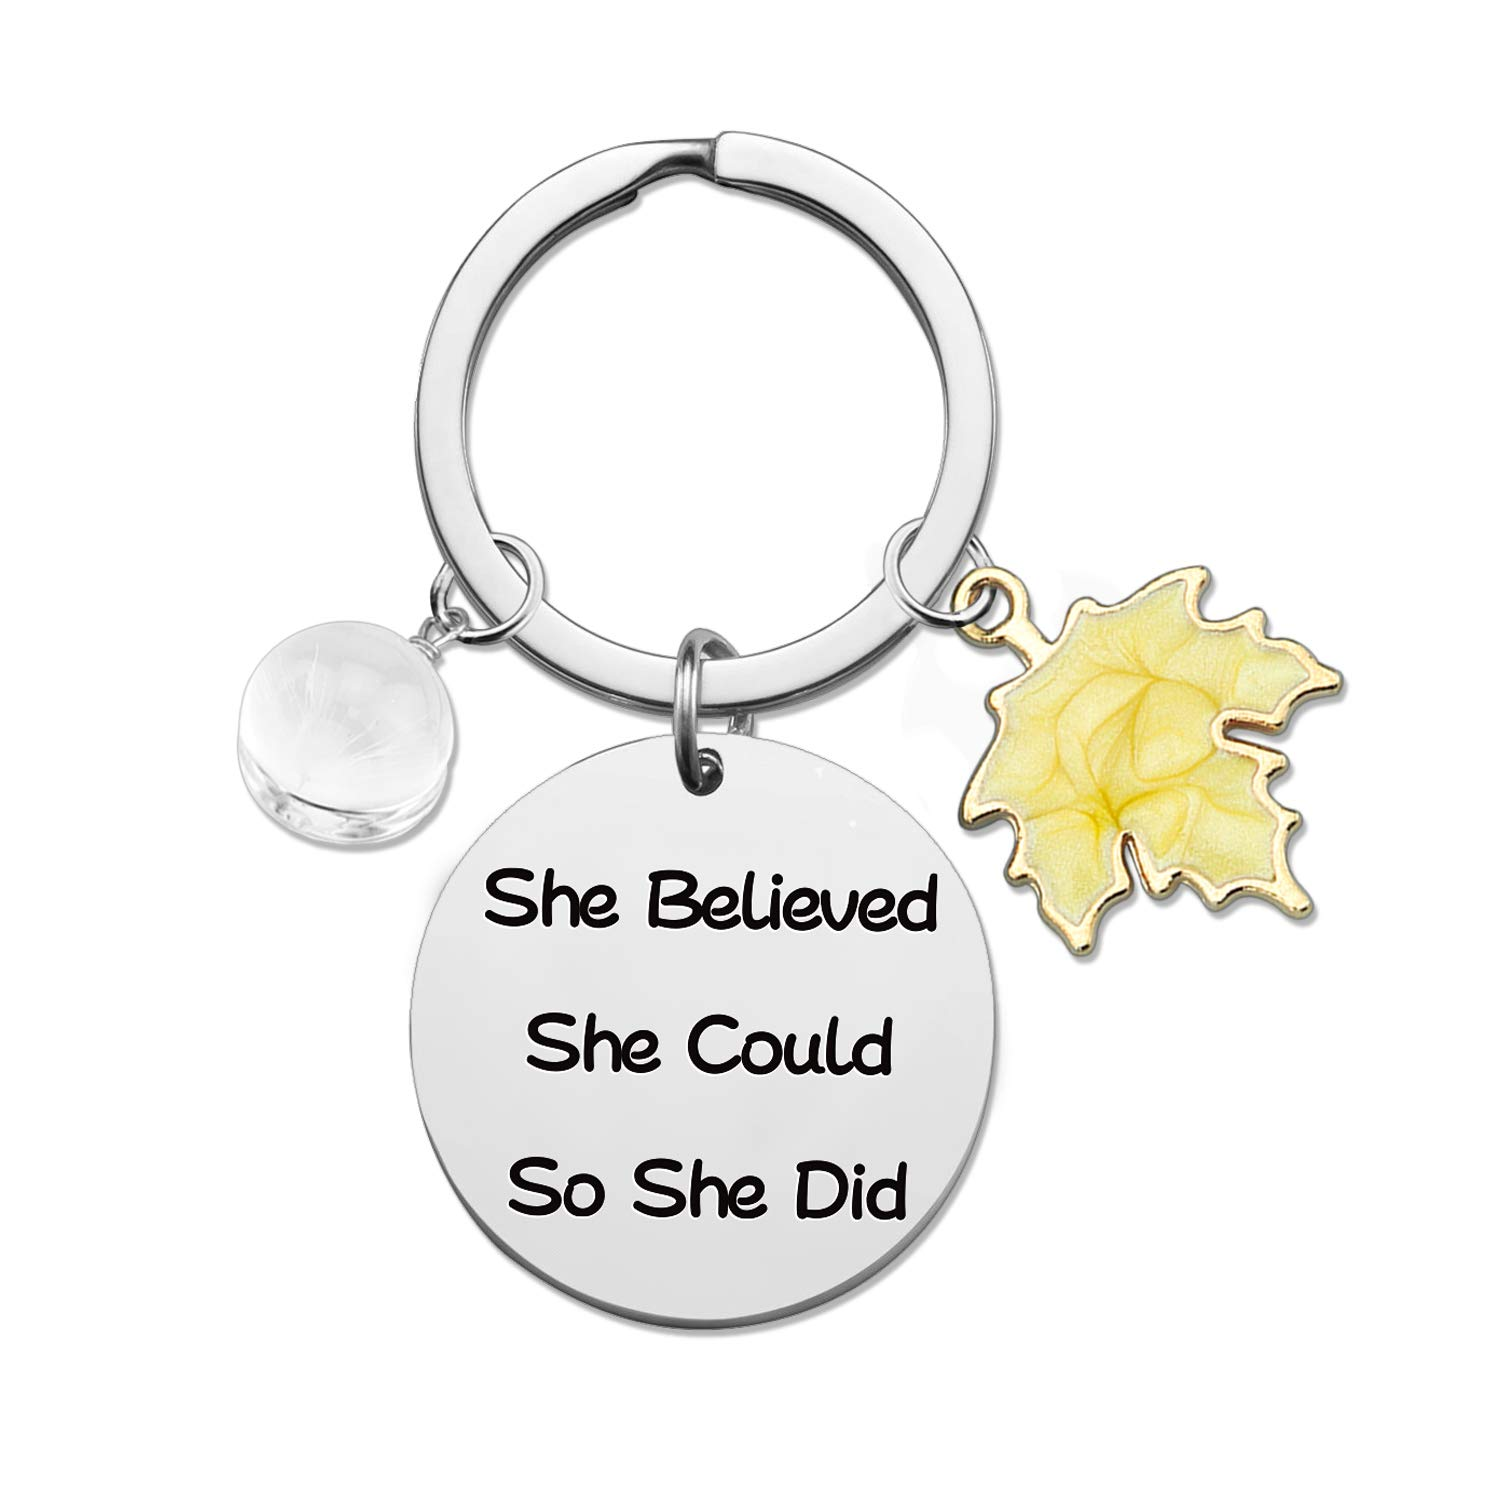 HN HNHB Keychain She Believed She Could So She Did Maple Leaf Charm for Mother Daughter Maple Leaf Lover Birthday